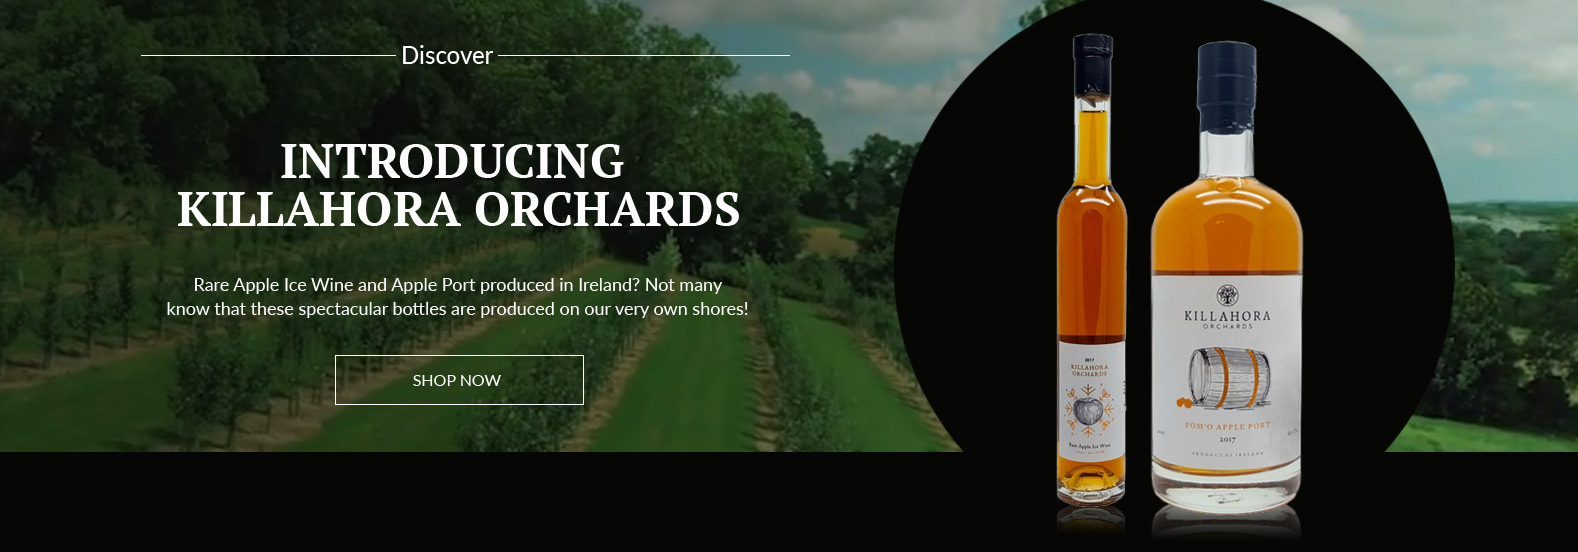 Introducing Killahora Orchards - Irish wine in front of vineyard